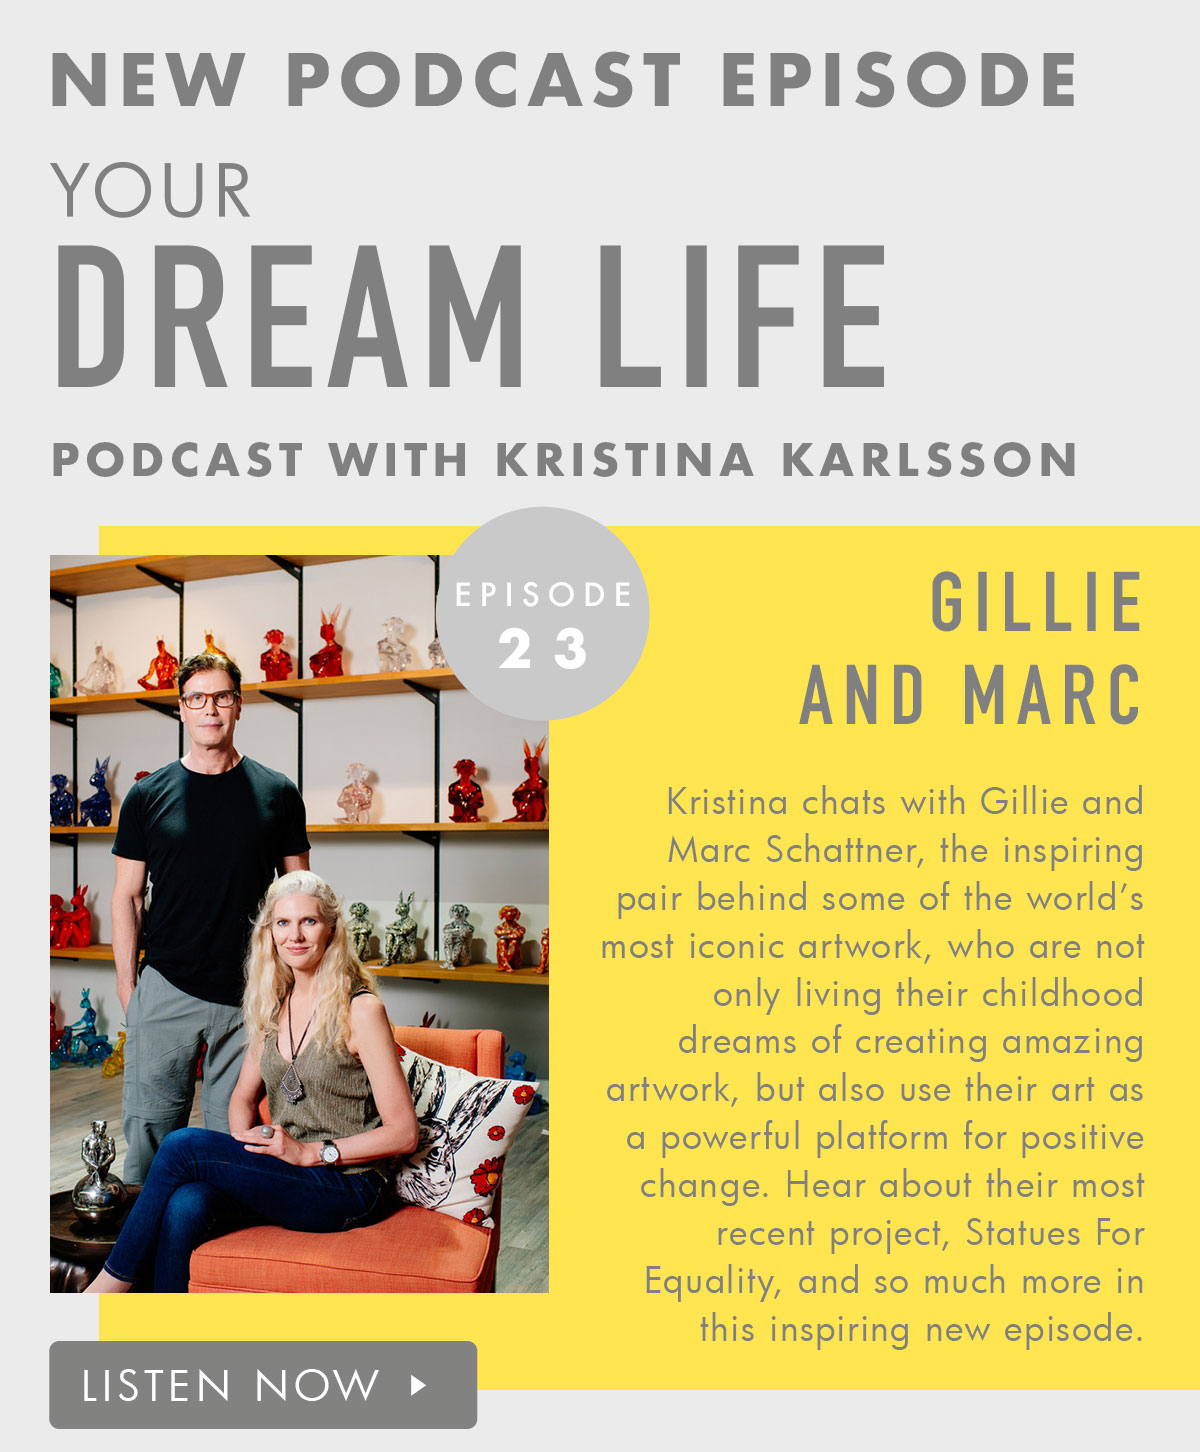 New Episode Your Dream Life Podcast. Listen now.